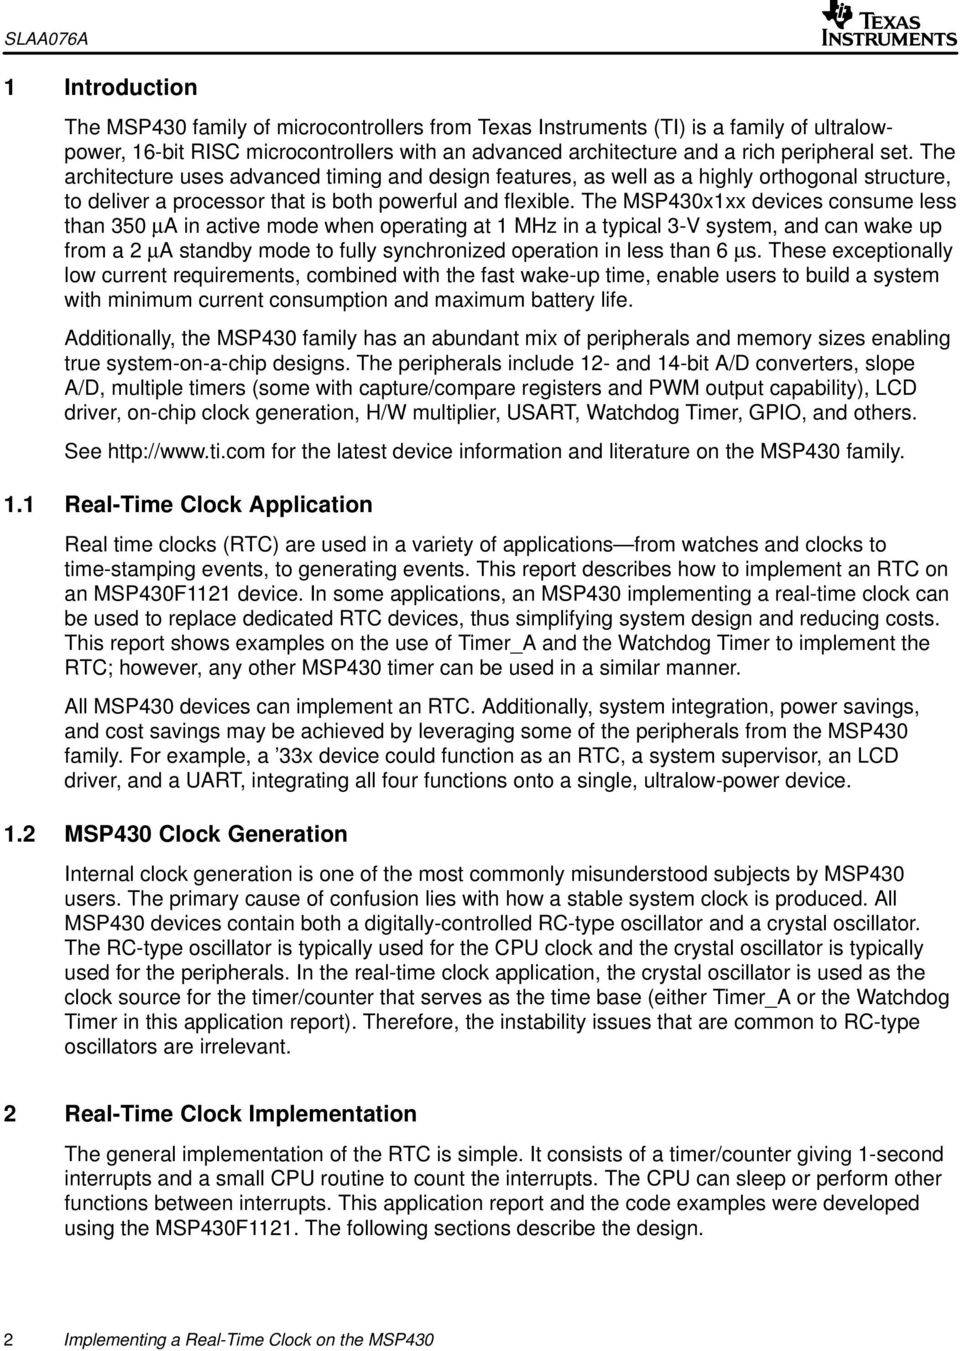 Implementing a Real-Time Clock on the MSP430 - PDF